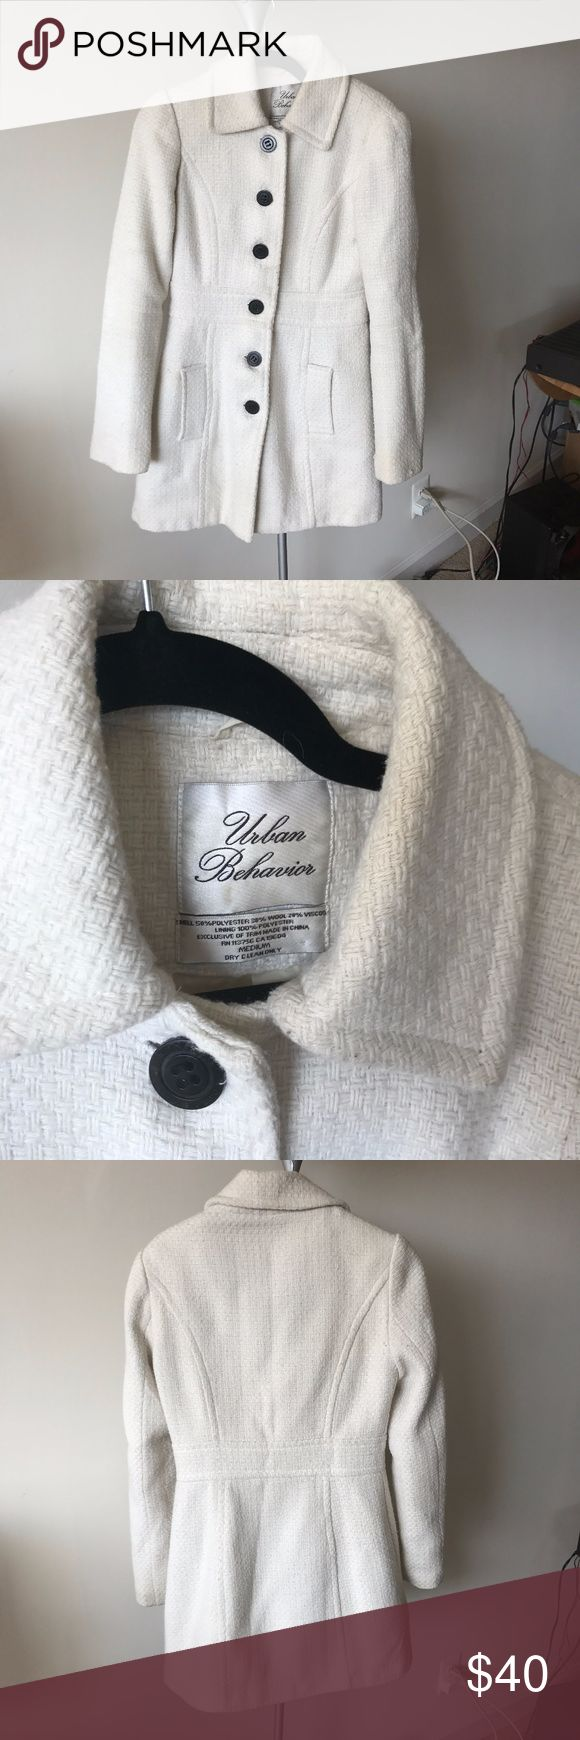 WOOL Med Cream Urban Behavior COAT jacket Gorgeous Cream Urban Behavior jacket! size medium. Best fits size 4-8/10 depending on bust. Buttons have been replaced with calvin klein dark buttons. Some light pilling.  Pet free smoke free home I accept or counter all offers Thanks for shopping and happy holidays! Urban Behavior Jackets & Coats